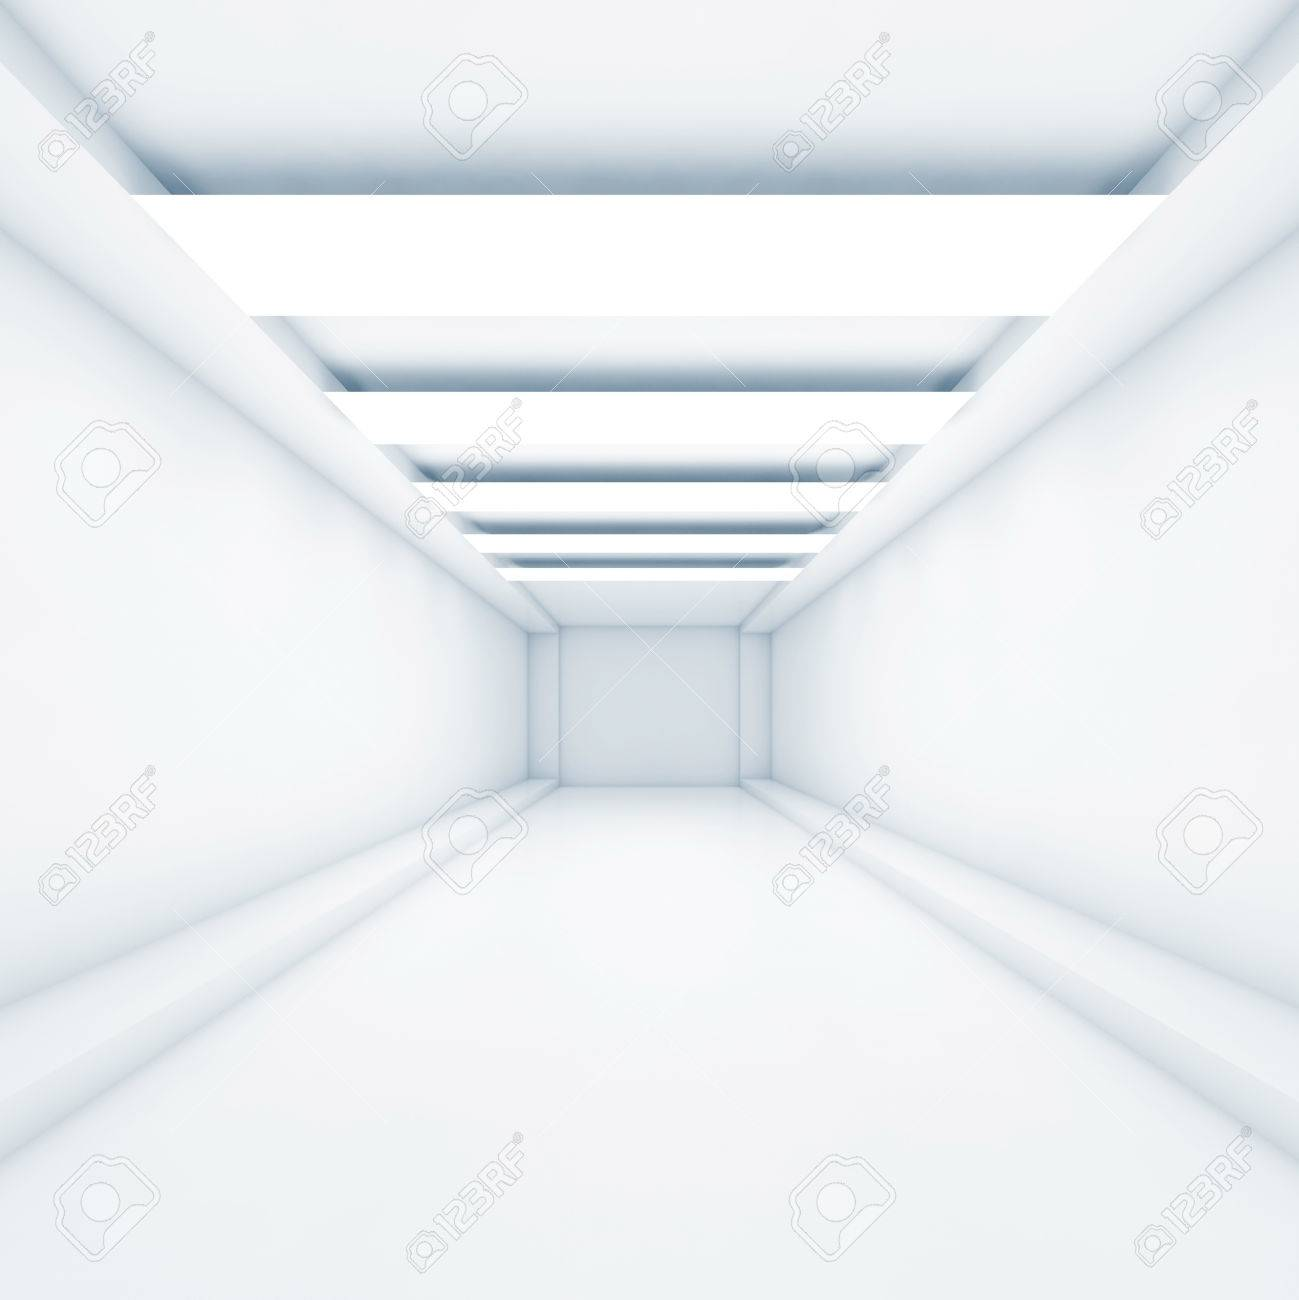 Abstract Empty Tunnel Background With Stripes Of Decorative Ceiling Stock Photo Picture And Royalty Free Image Image 67979854